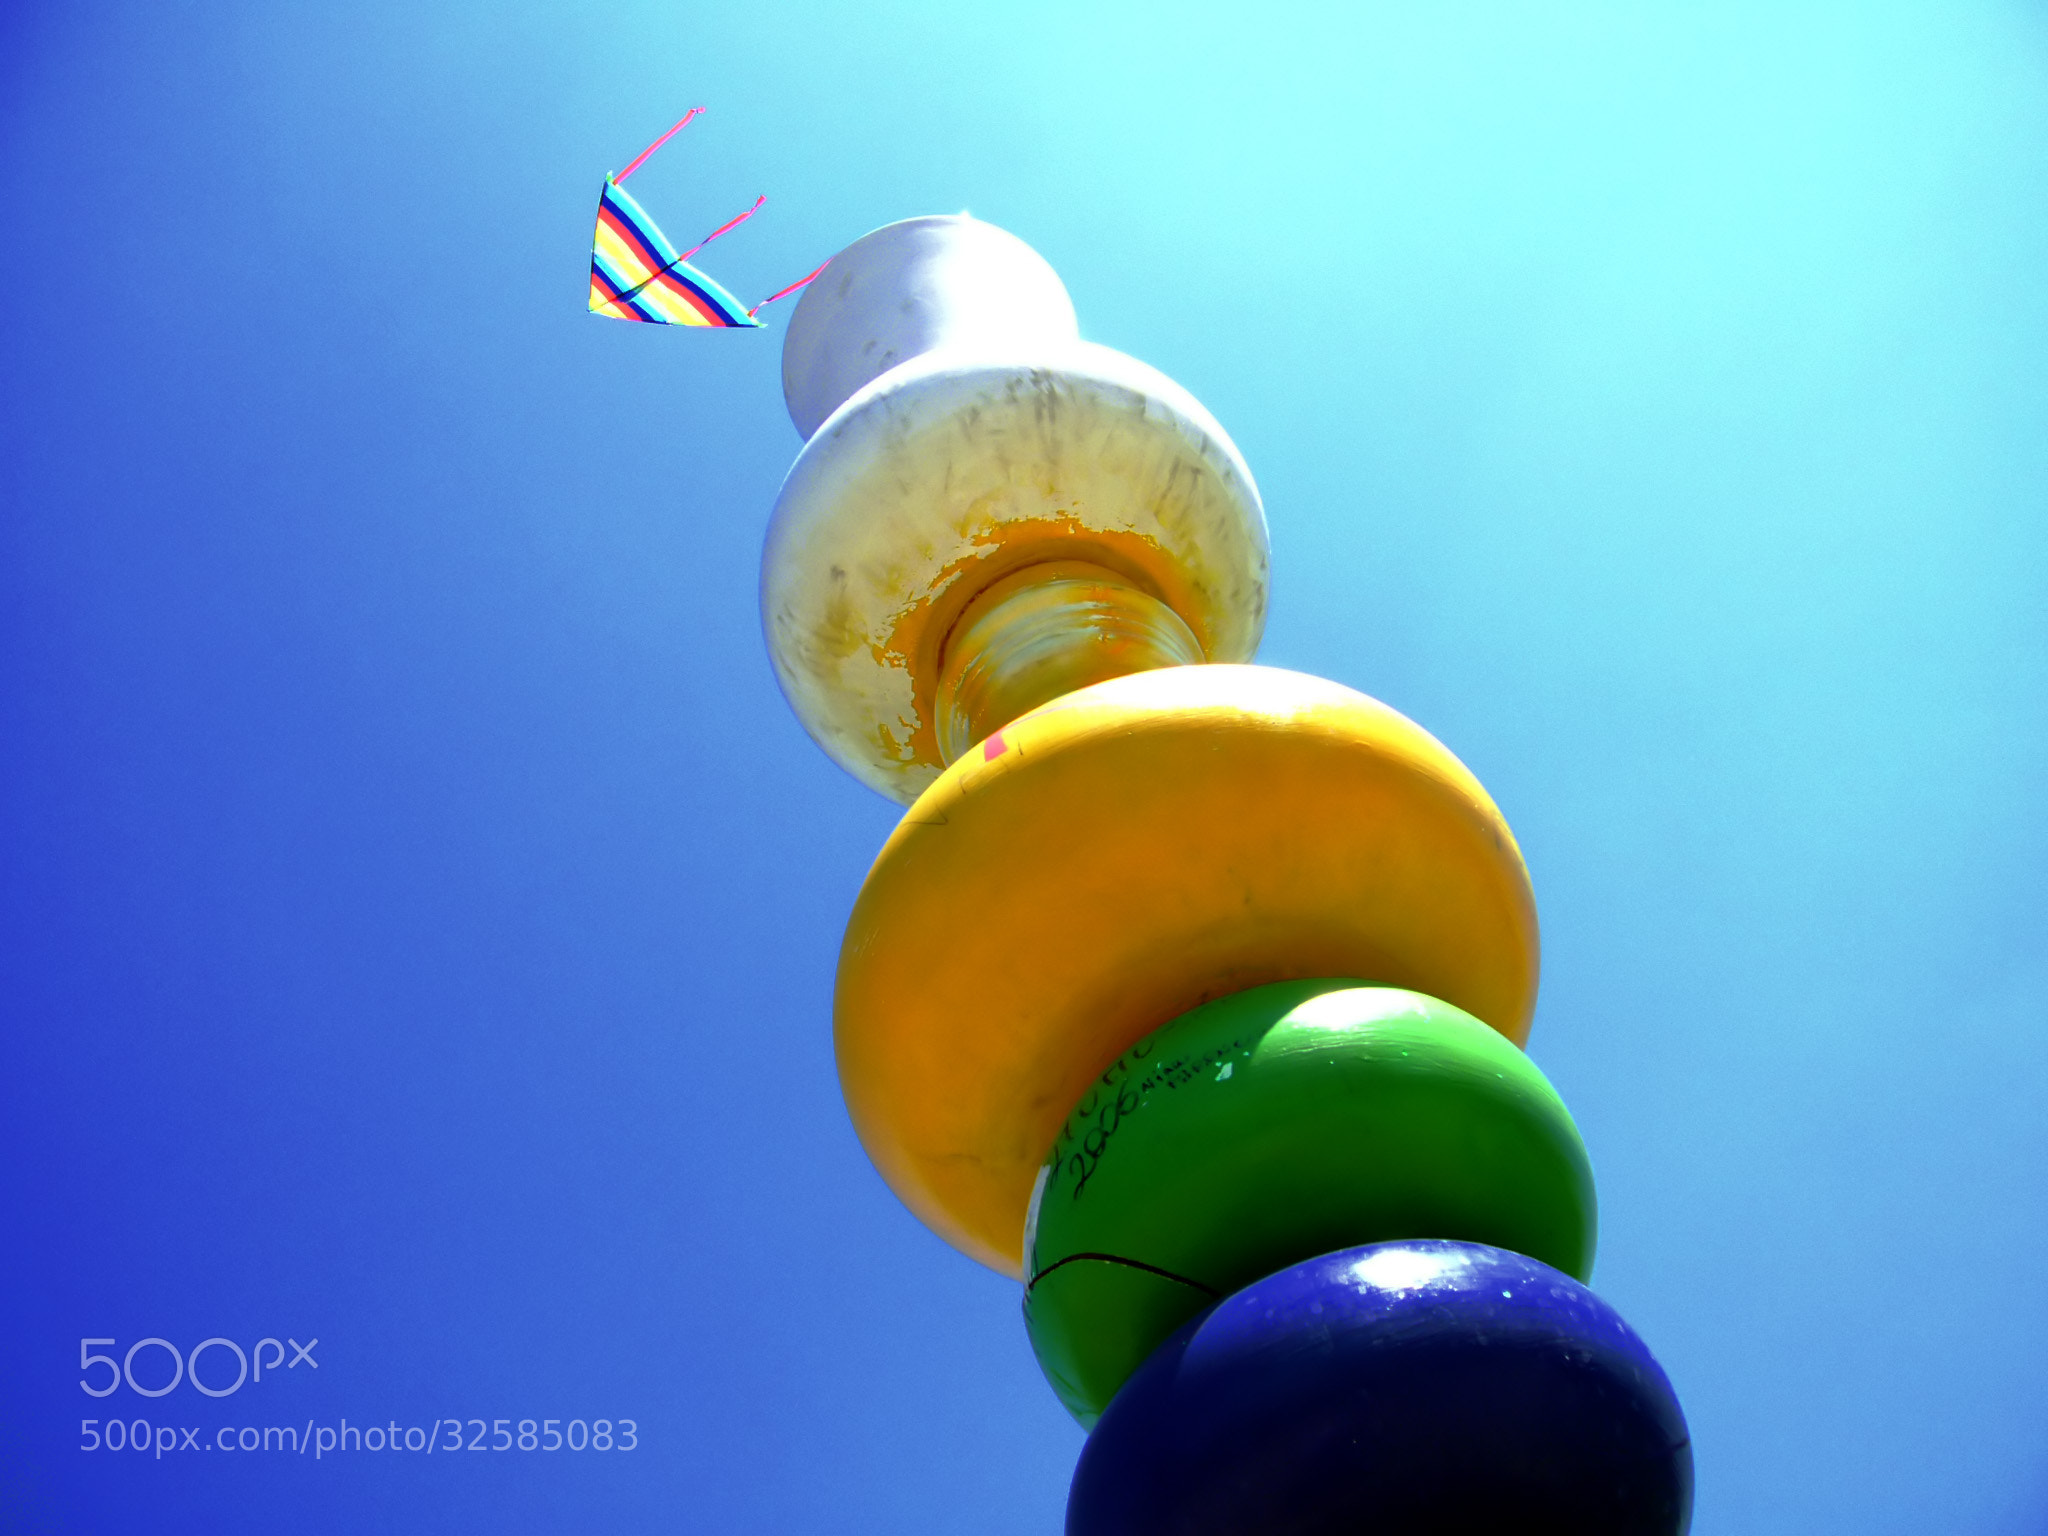 Photograph Kite Flying and Blue Sky by Rax Mex on 500px